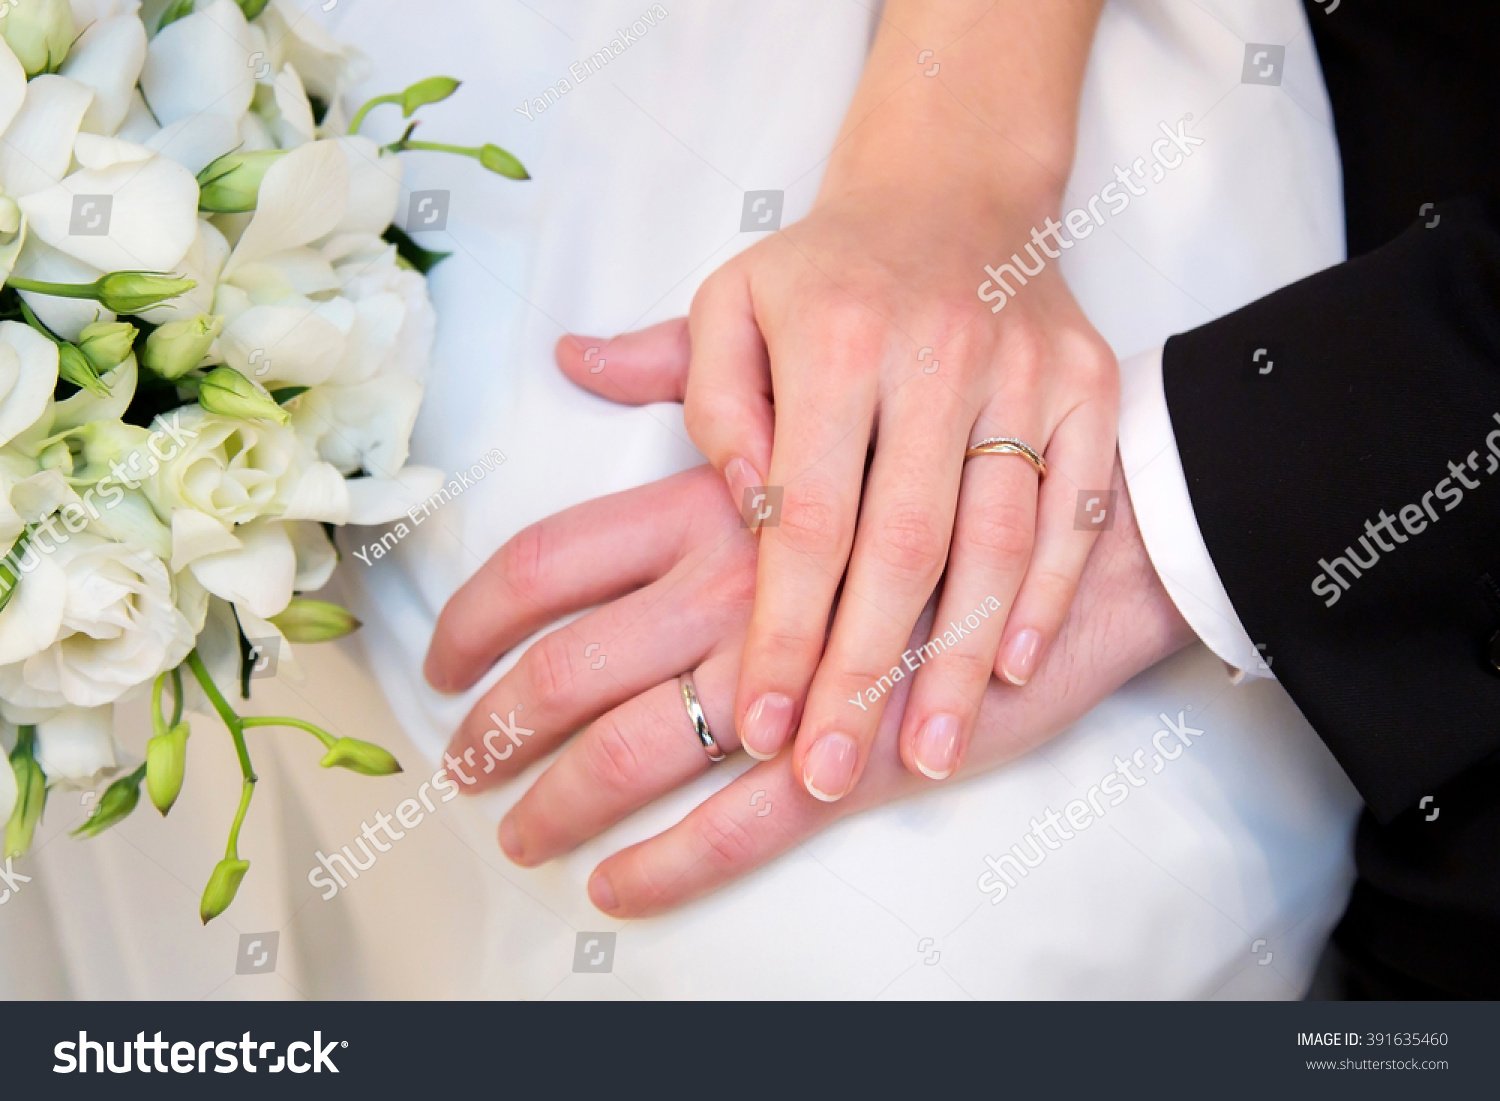 Bride Groom Hands Wedding Rings Stock Photo (Royalty Free) 391635460 ...